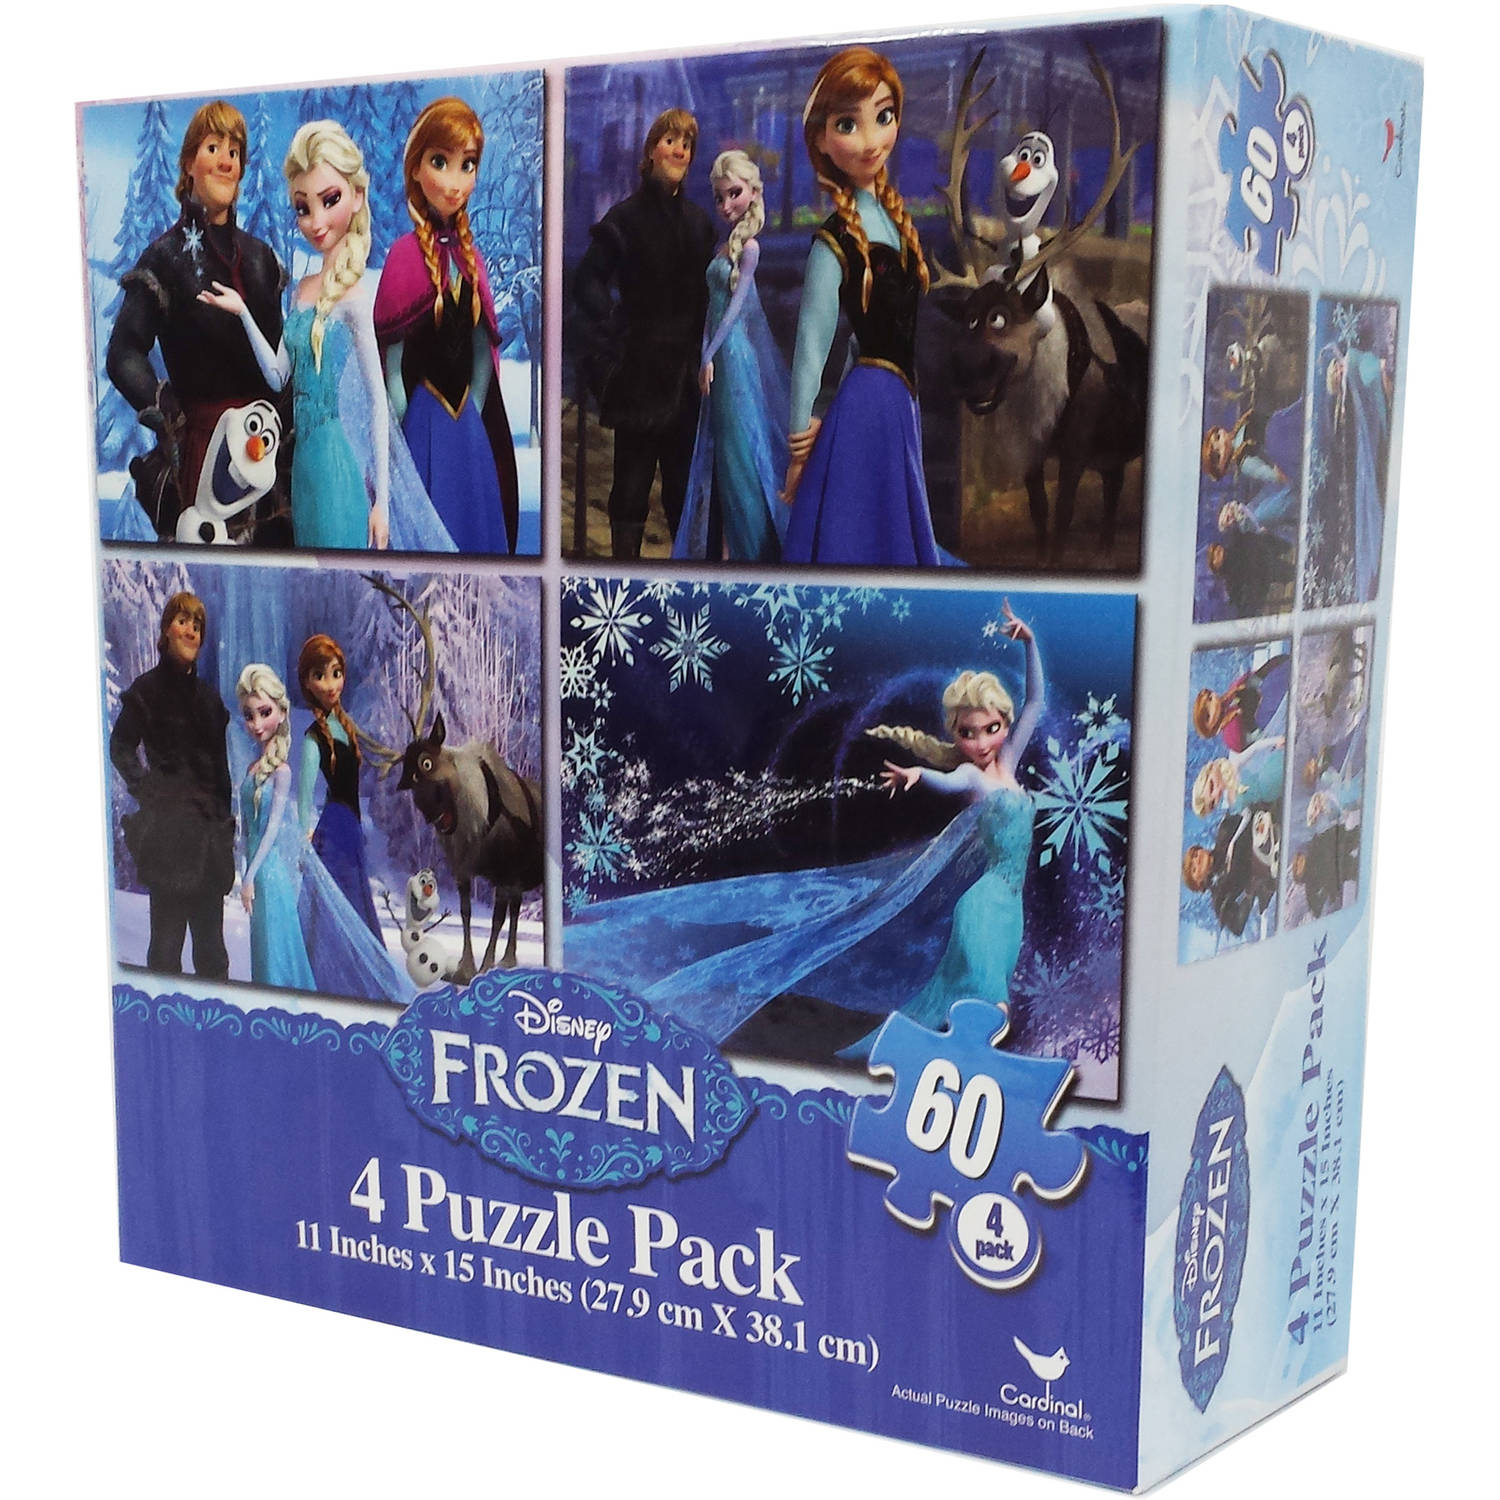 Disney Frozen 4 Basic Puzzle Box With Rope Handle